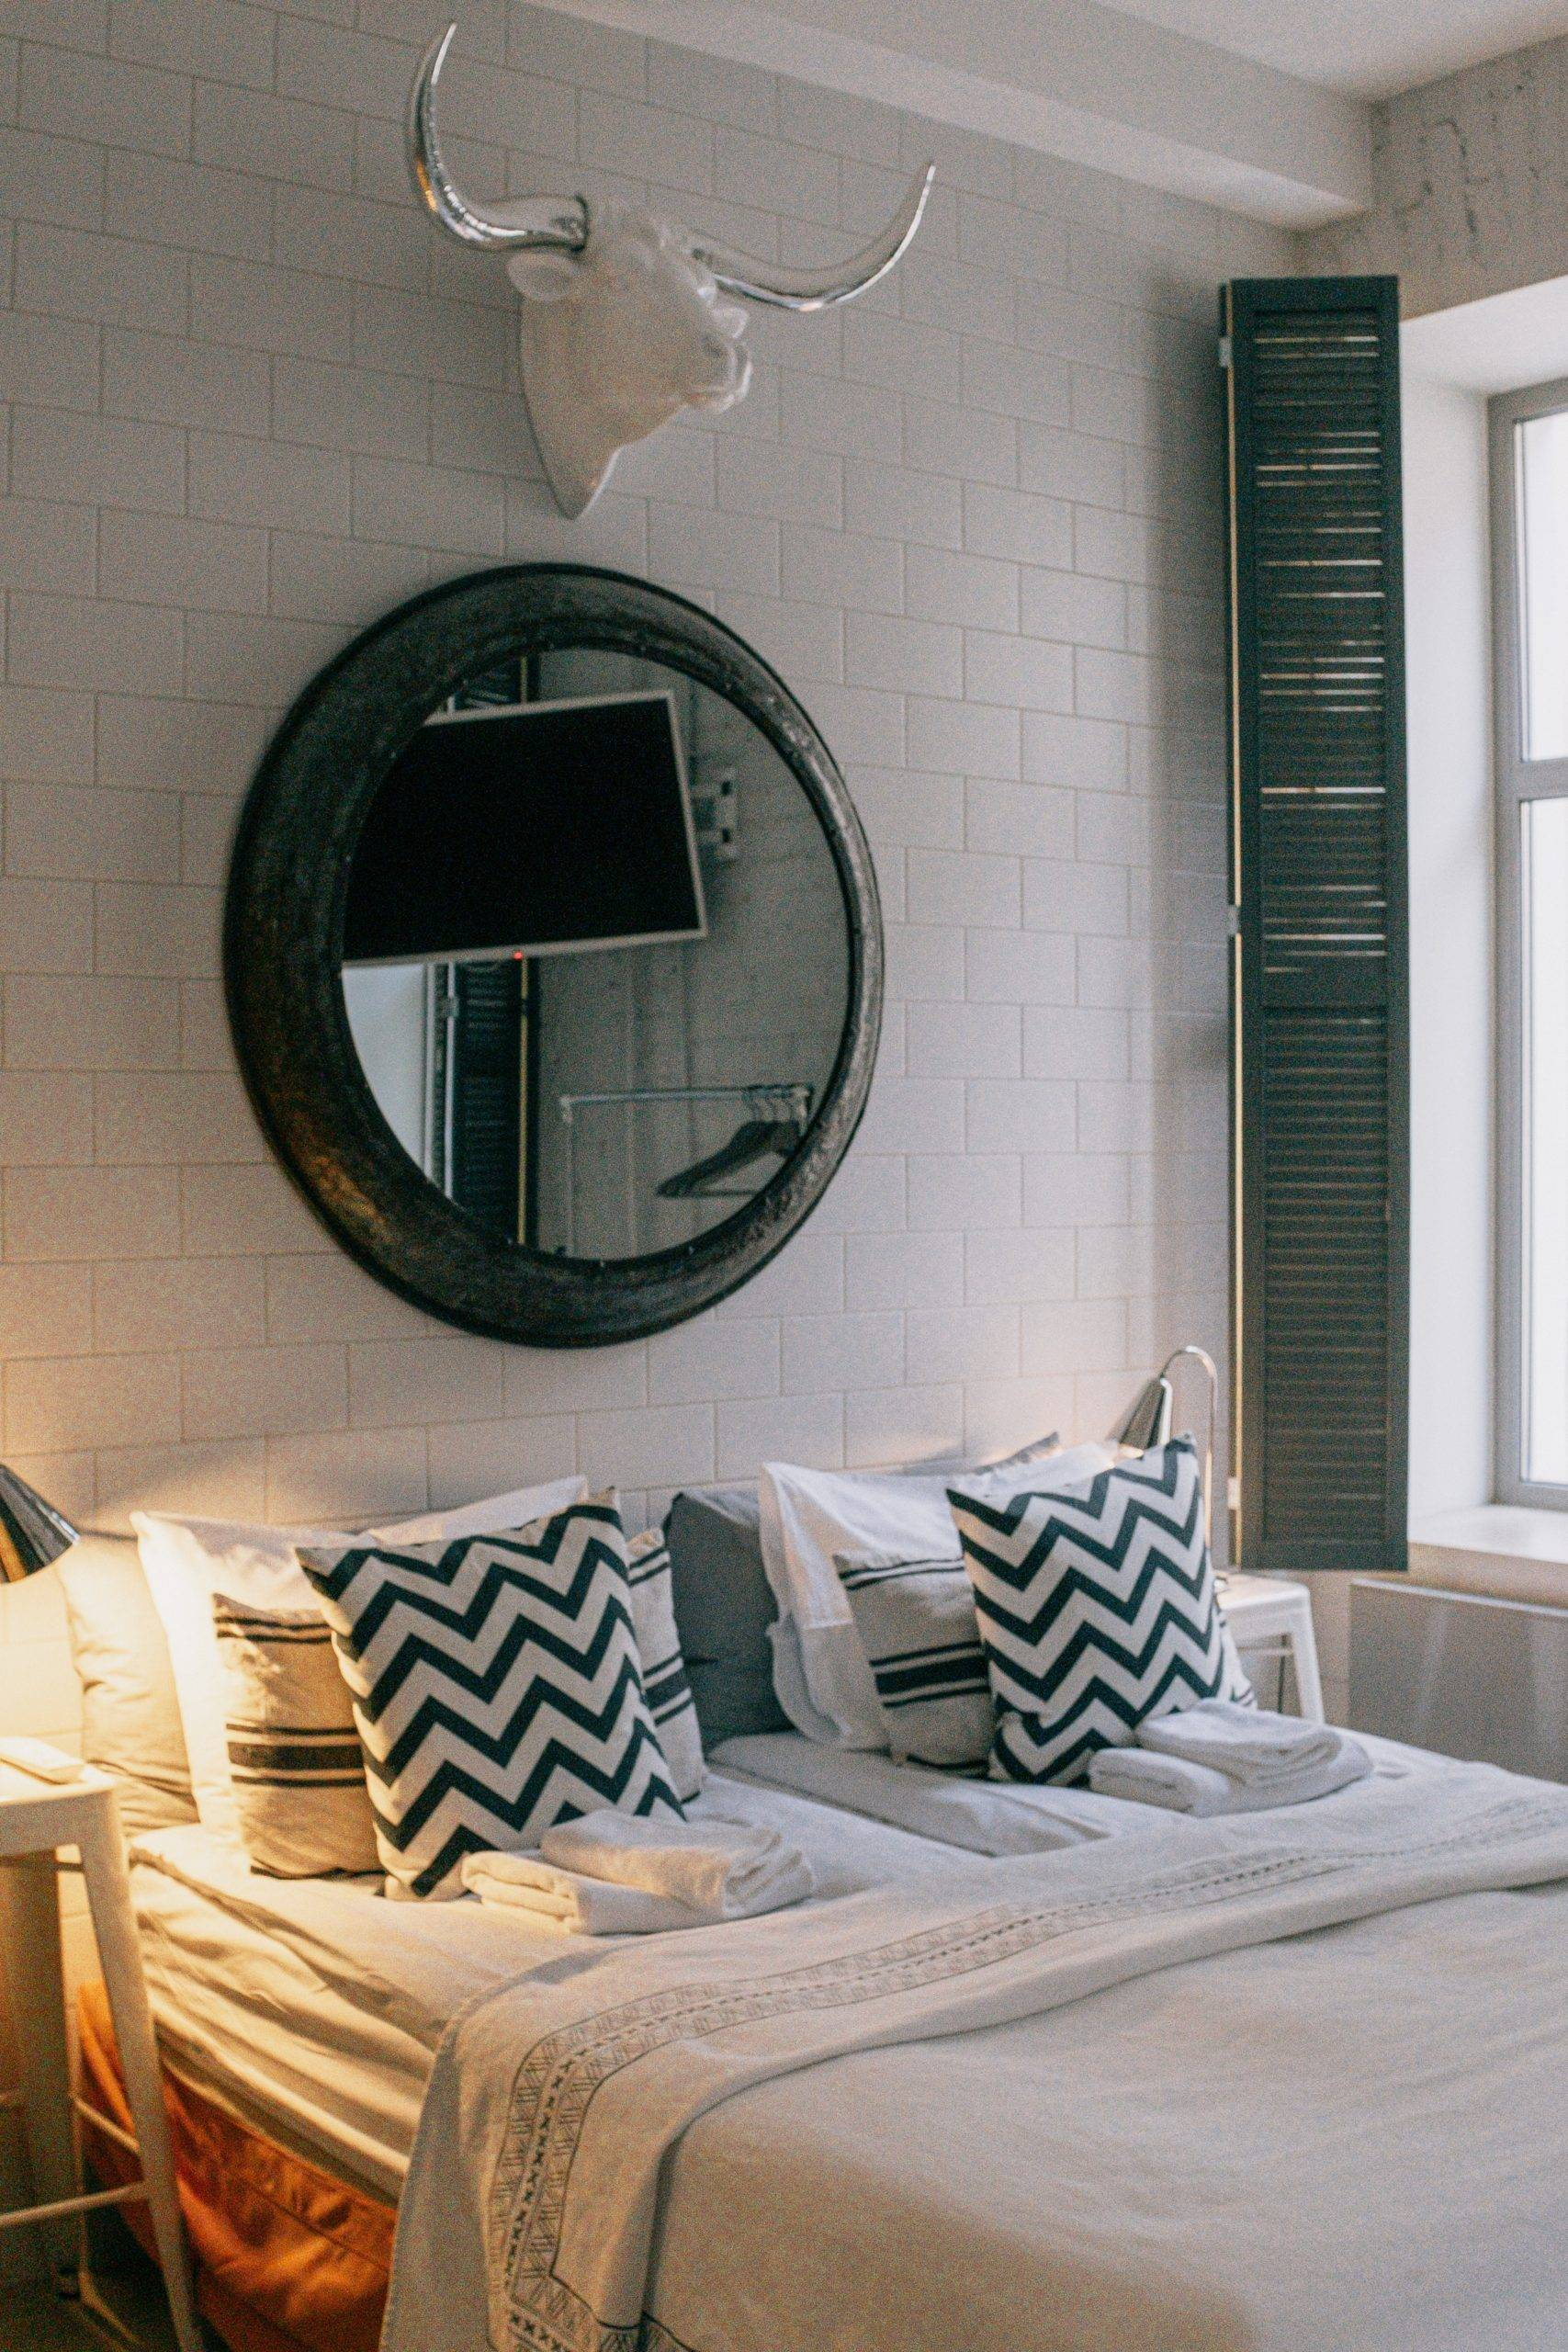 Large round mirror and bull head on the wall above the bed